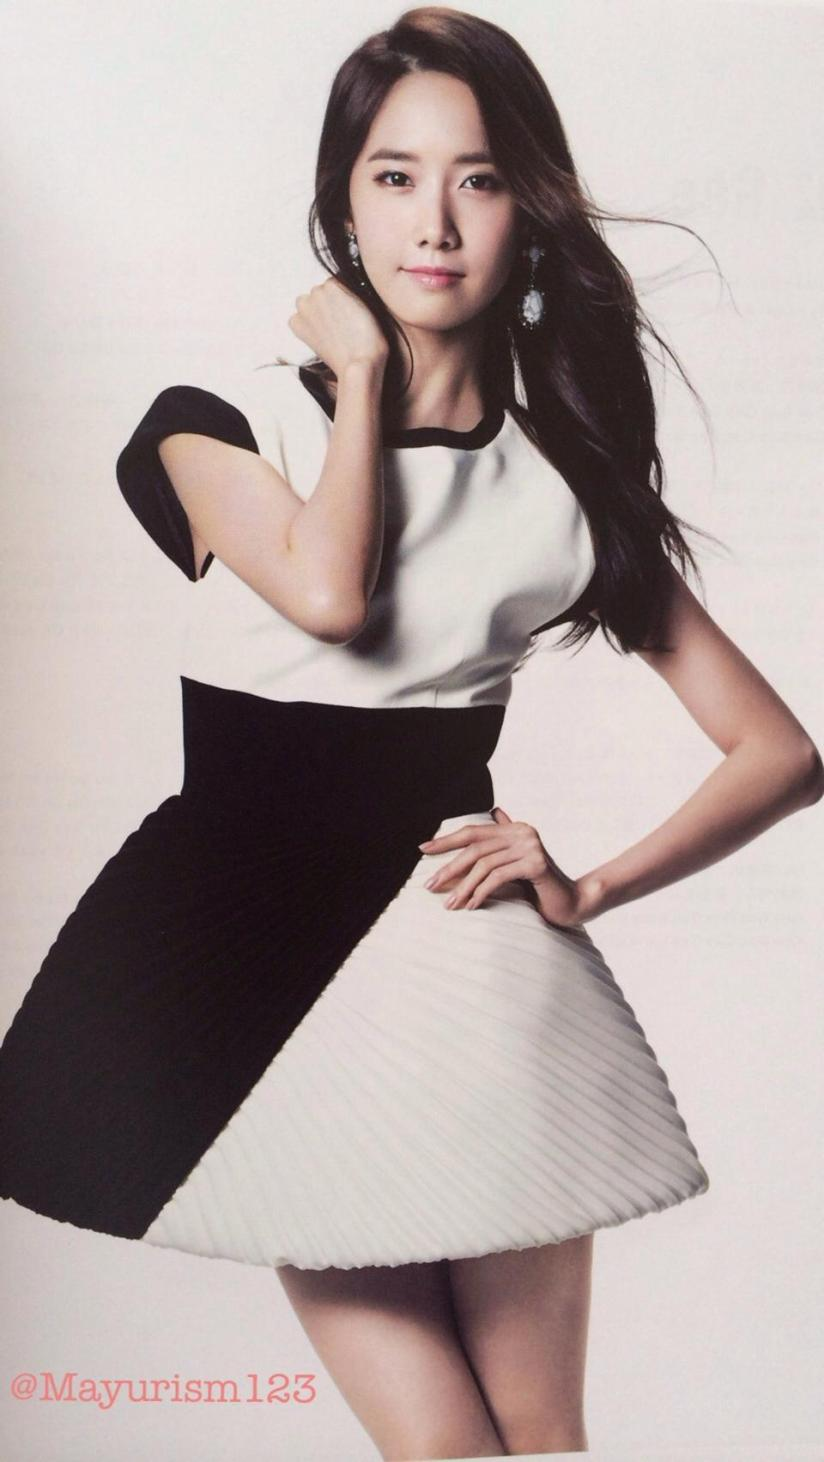 [220714] Yoona (SNSD) New Picture from Photobook The BEST (The Best Japanese Album - Type F) by Mayurism123 [1]